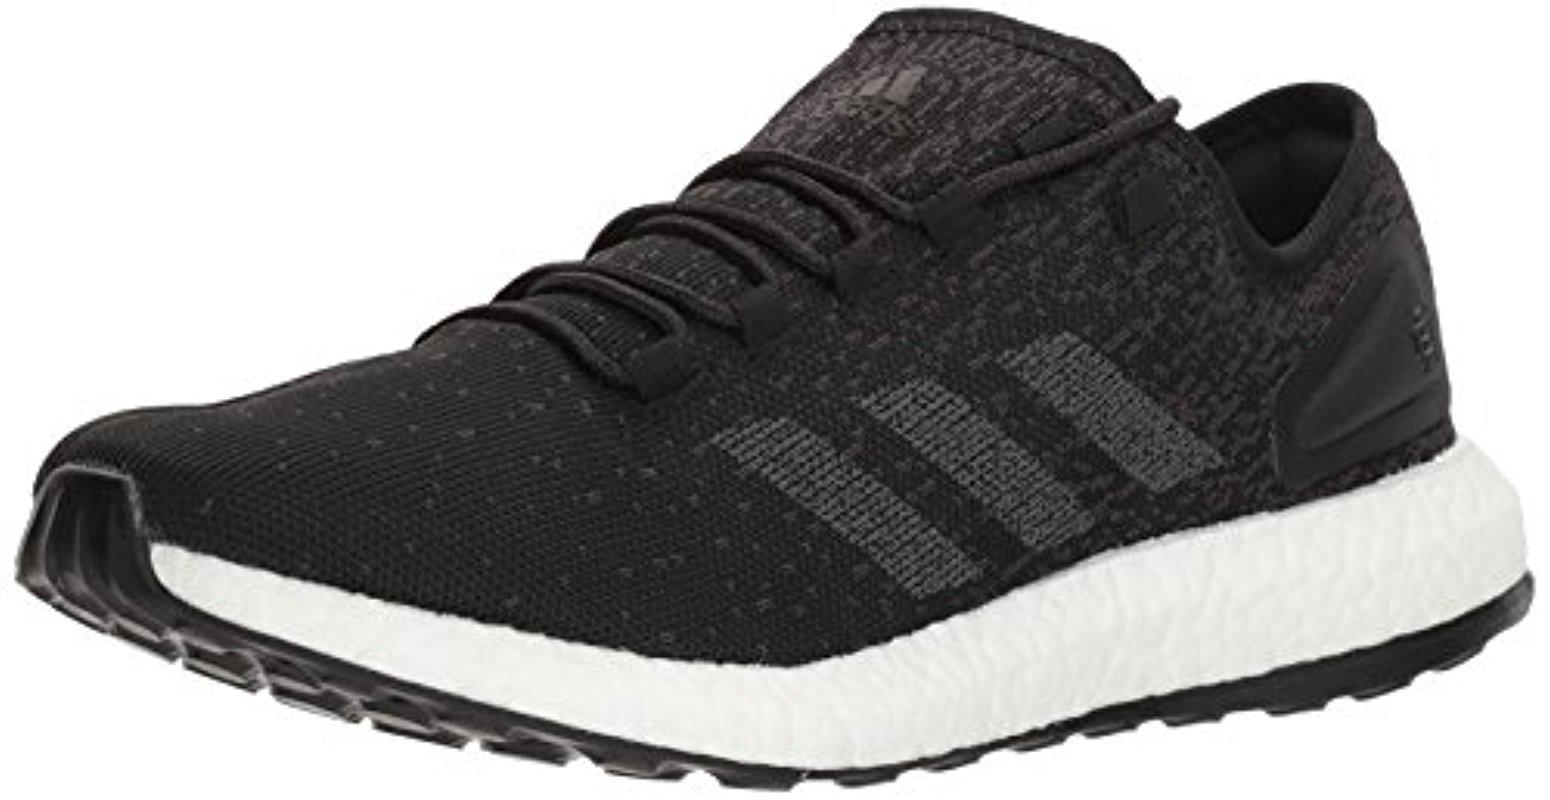 5b743790f62 Lyst - adidas Pureboost Reigning Champ M Running Shoe in Black for Men